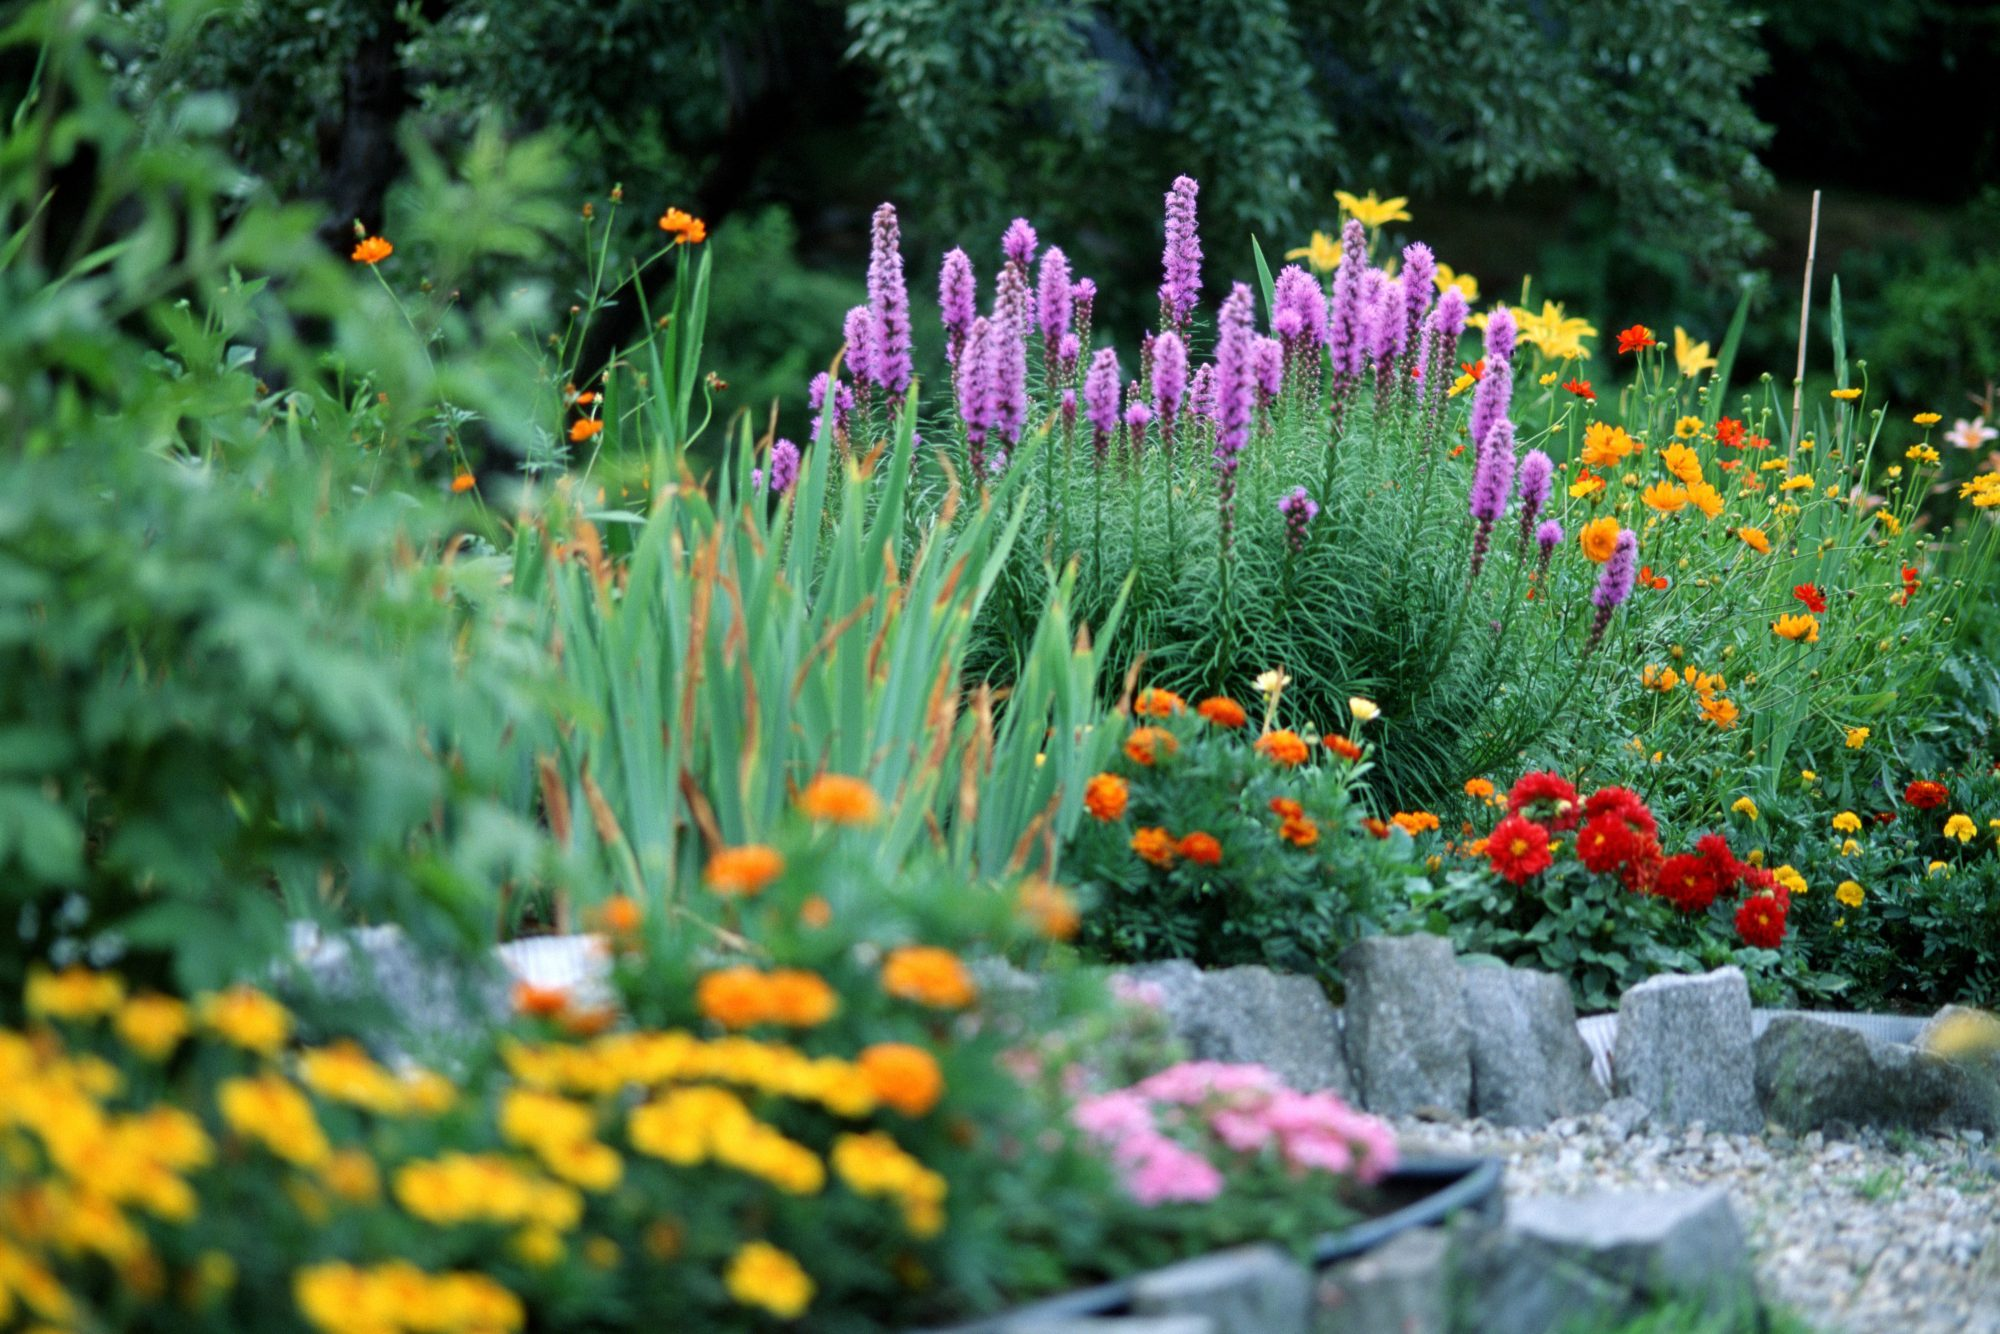 Companion Planting Can Help You Make the Most of Your Garden